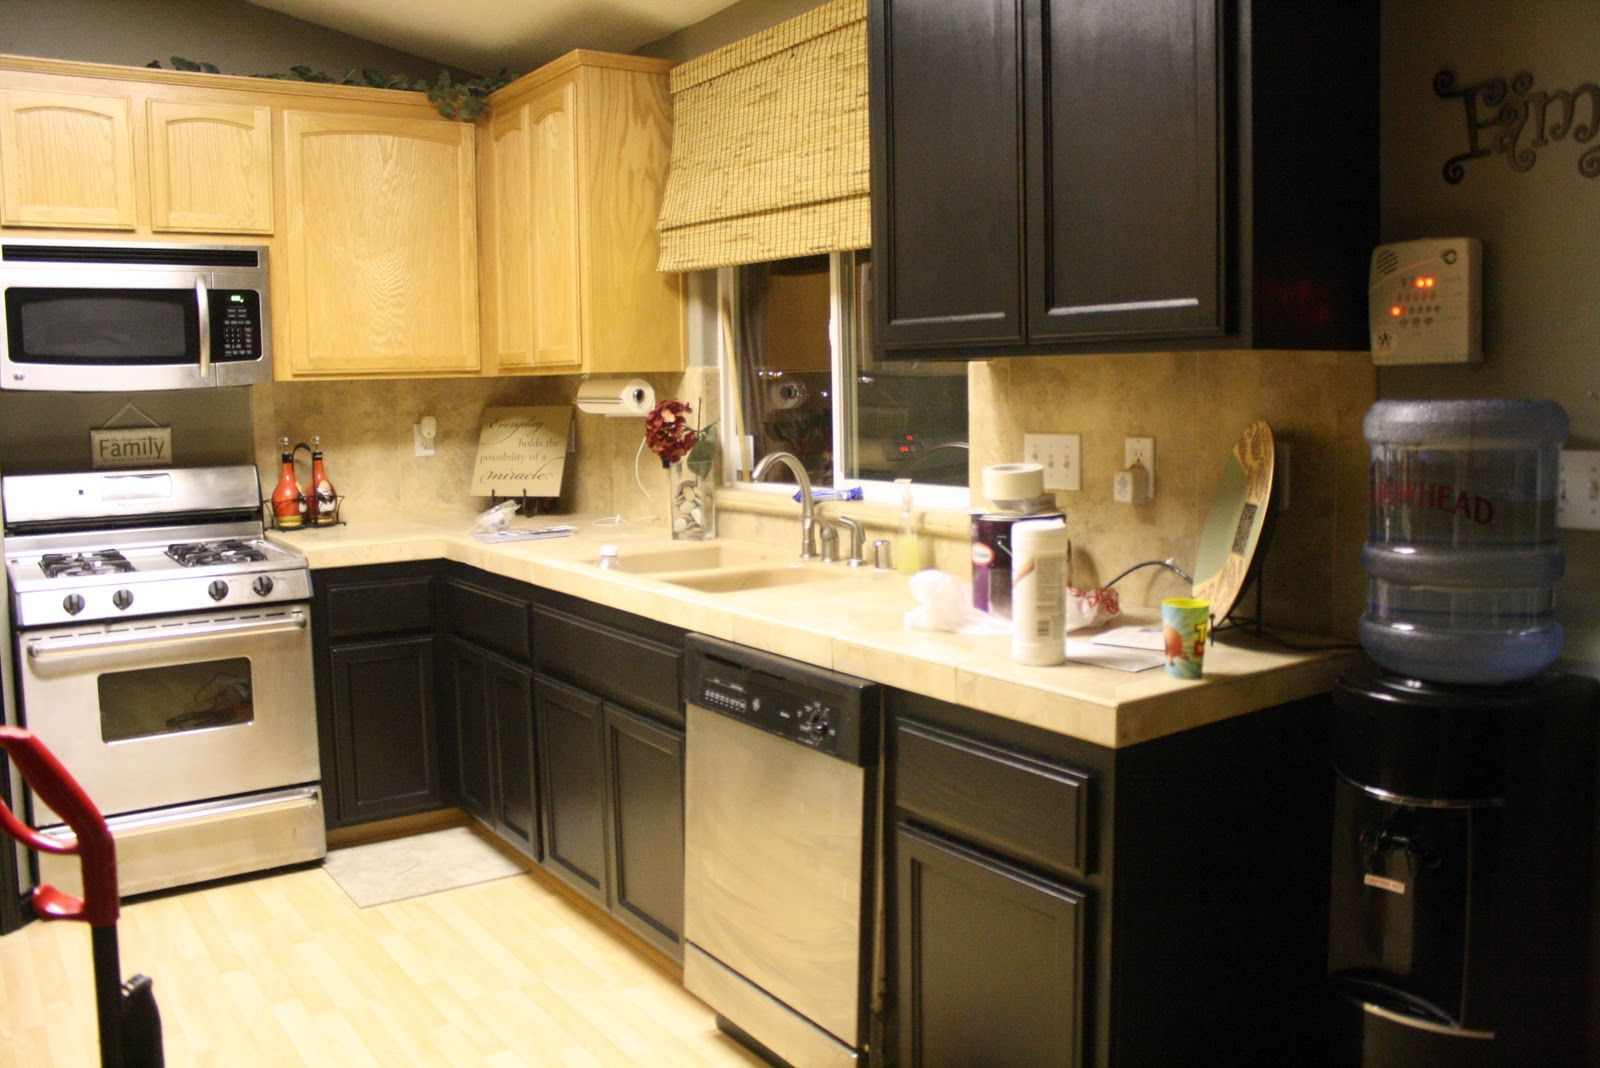 How to paint over oak cabinets | Small kitchen layouts ...